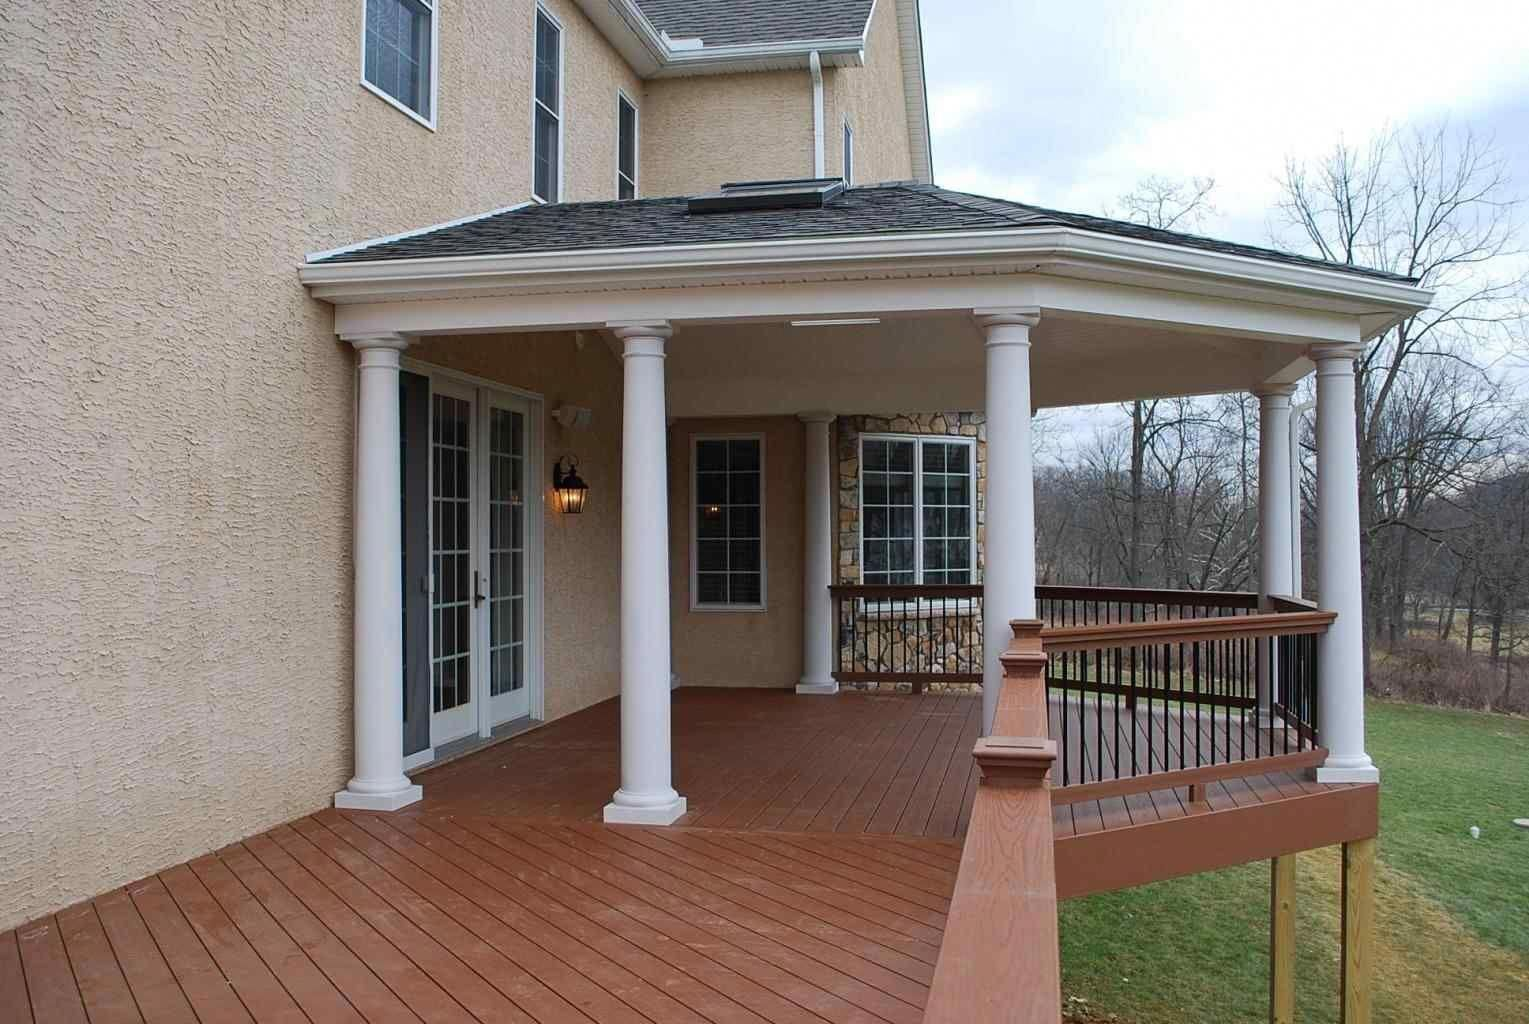 Deck Roof Google Search Inspiring Covered Deck Plans 7 Covered Deck Designs Deck Railing Ideas Galler Rooftop Design Deck Building Cost Decks And Porches